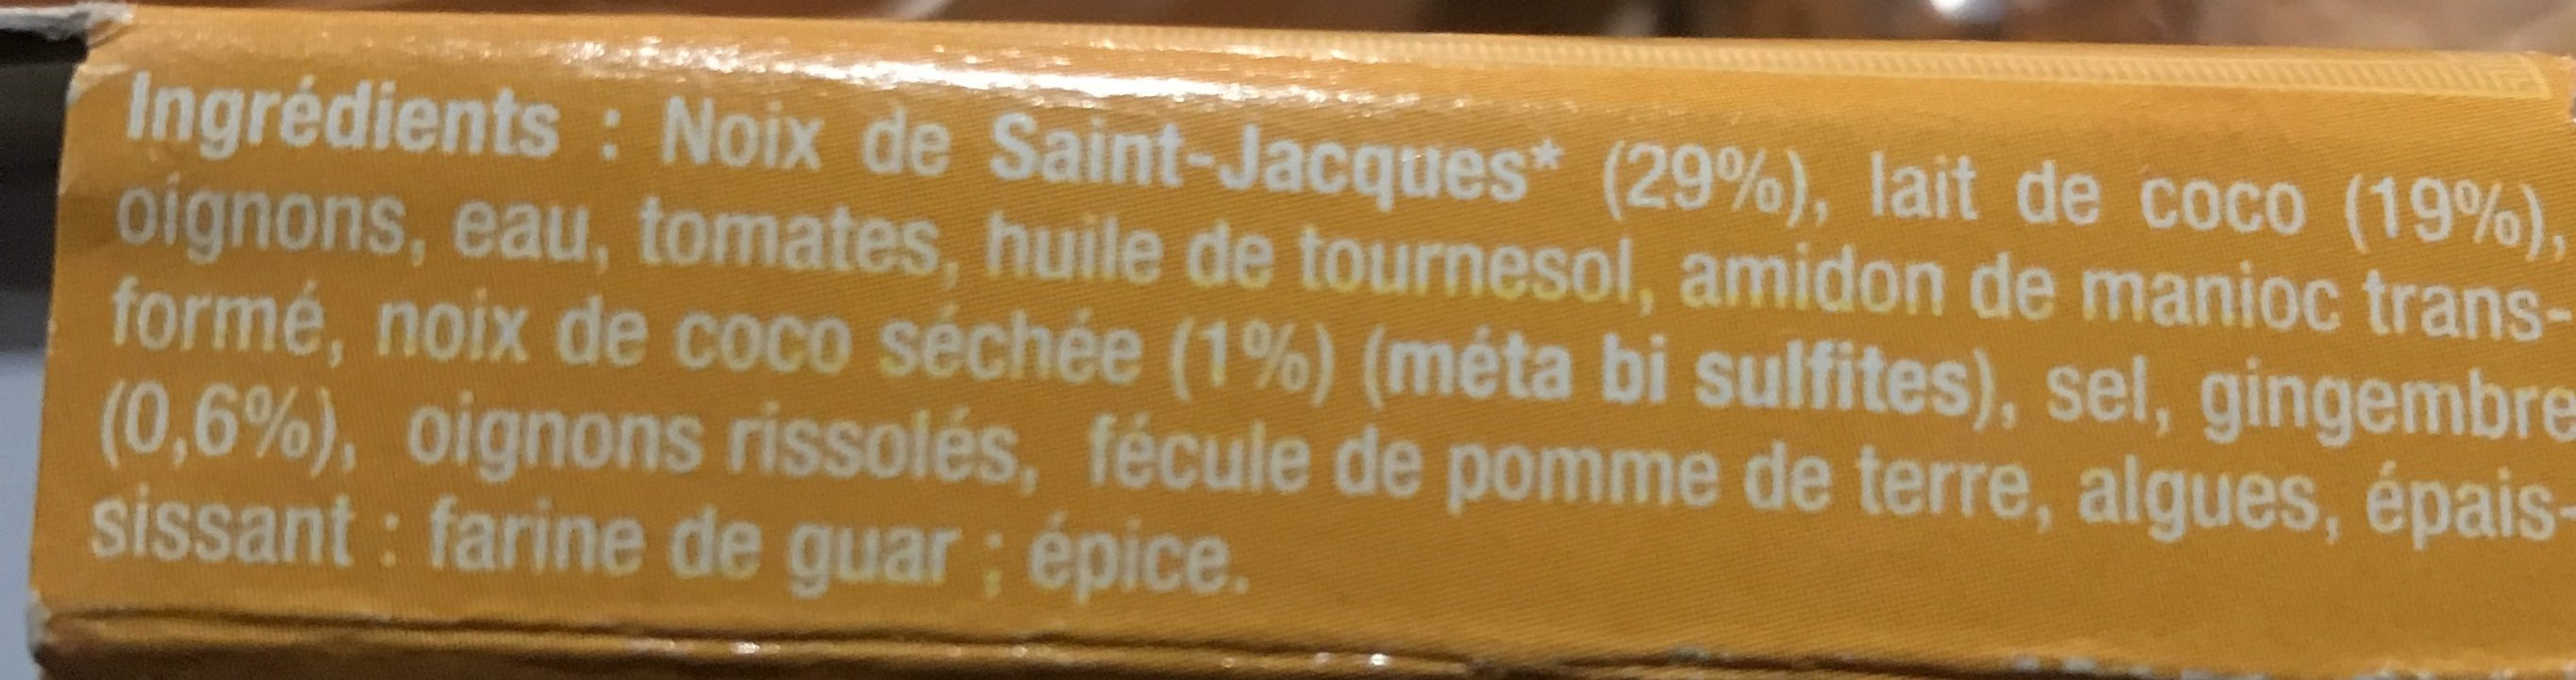 Petite marmite St-Jacques Coco et Gingembre - Ingredients